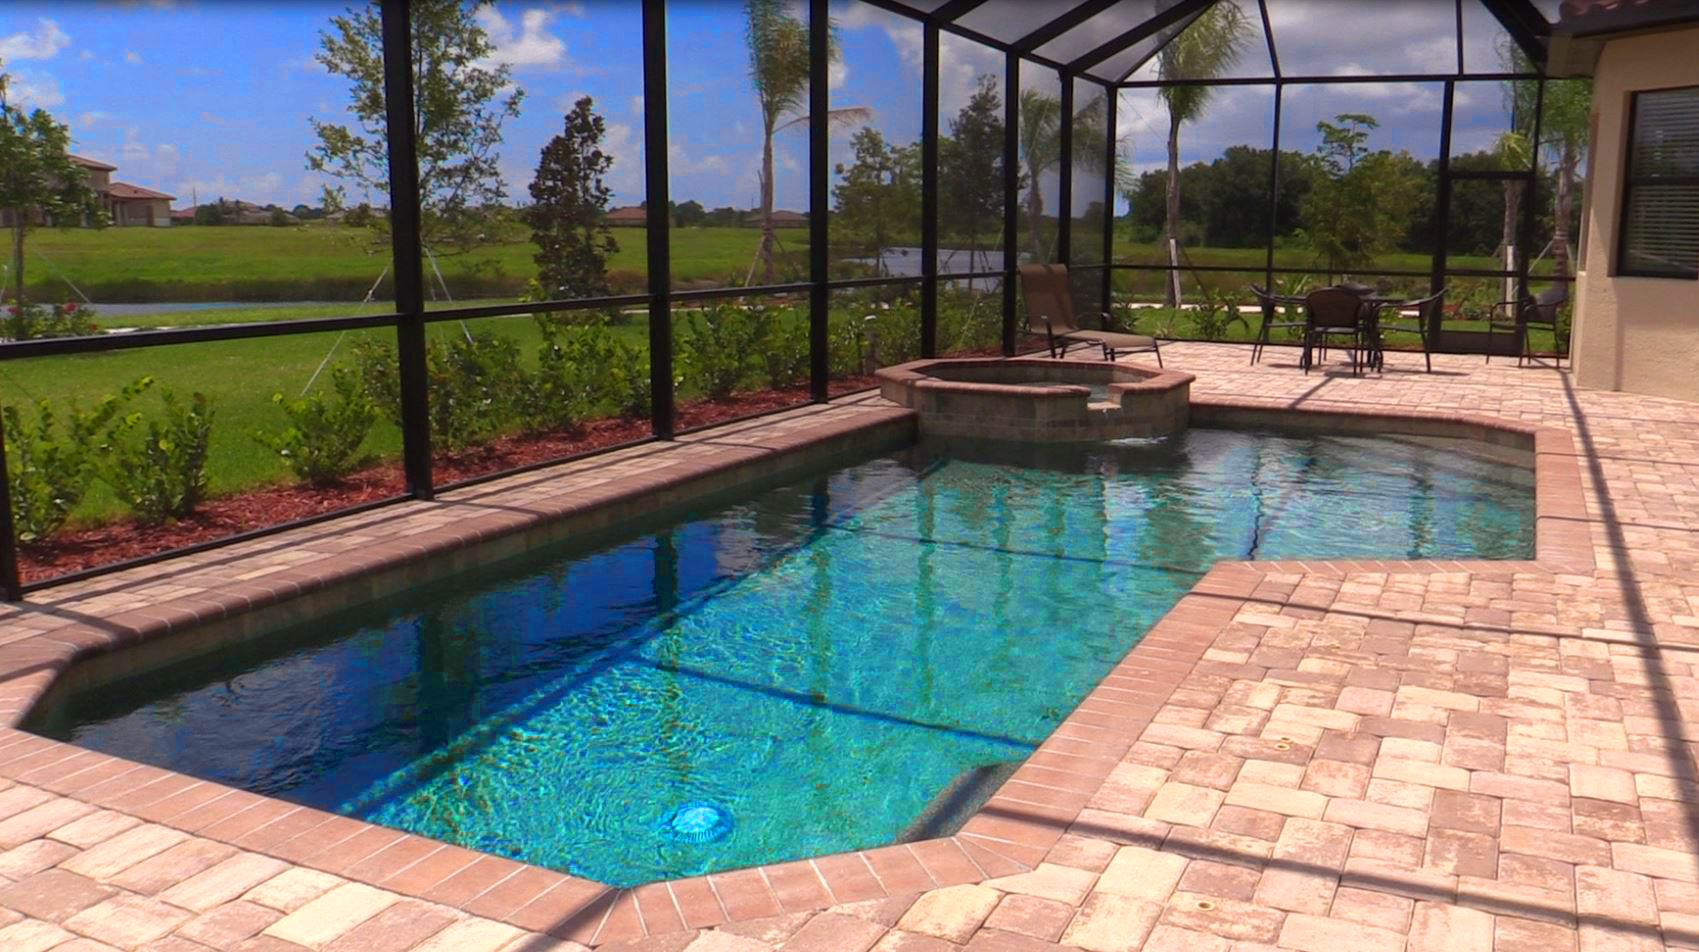 Gran paradiso venice florida real estate for sale for Florida pool homes